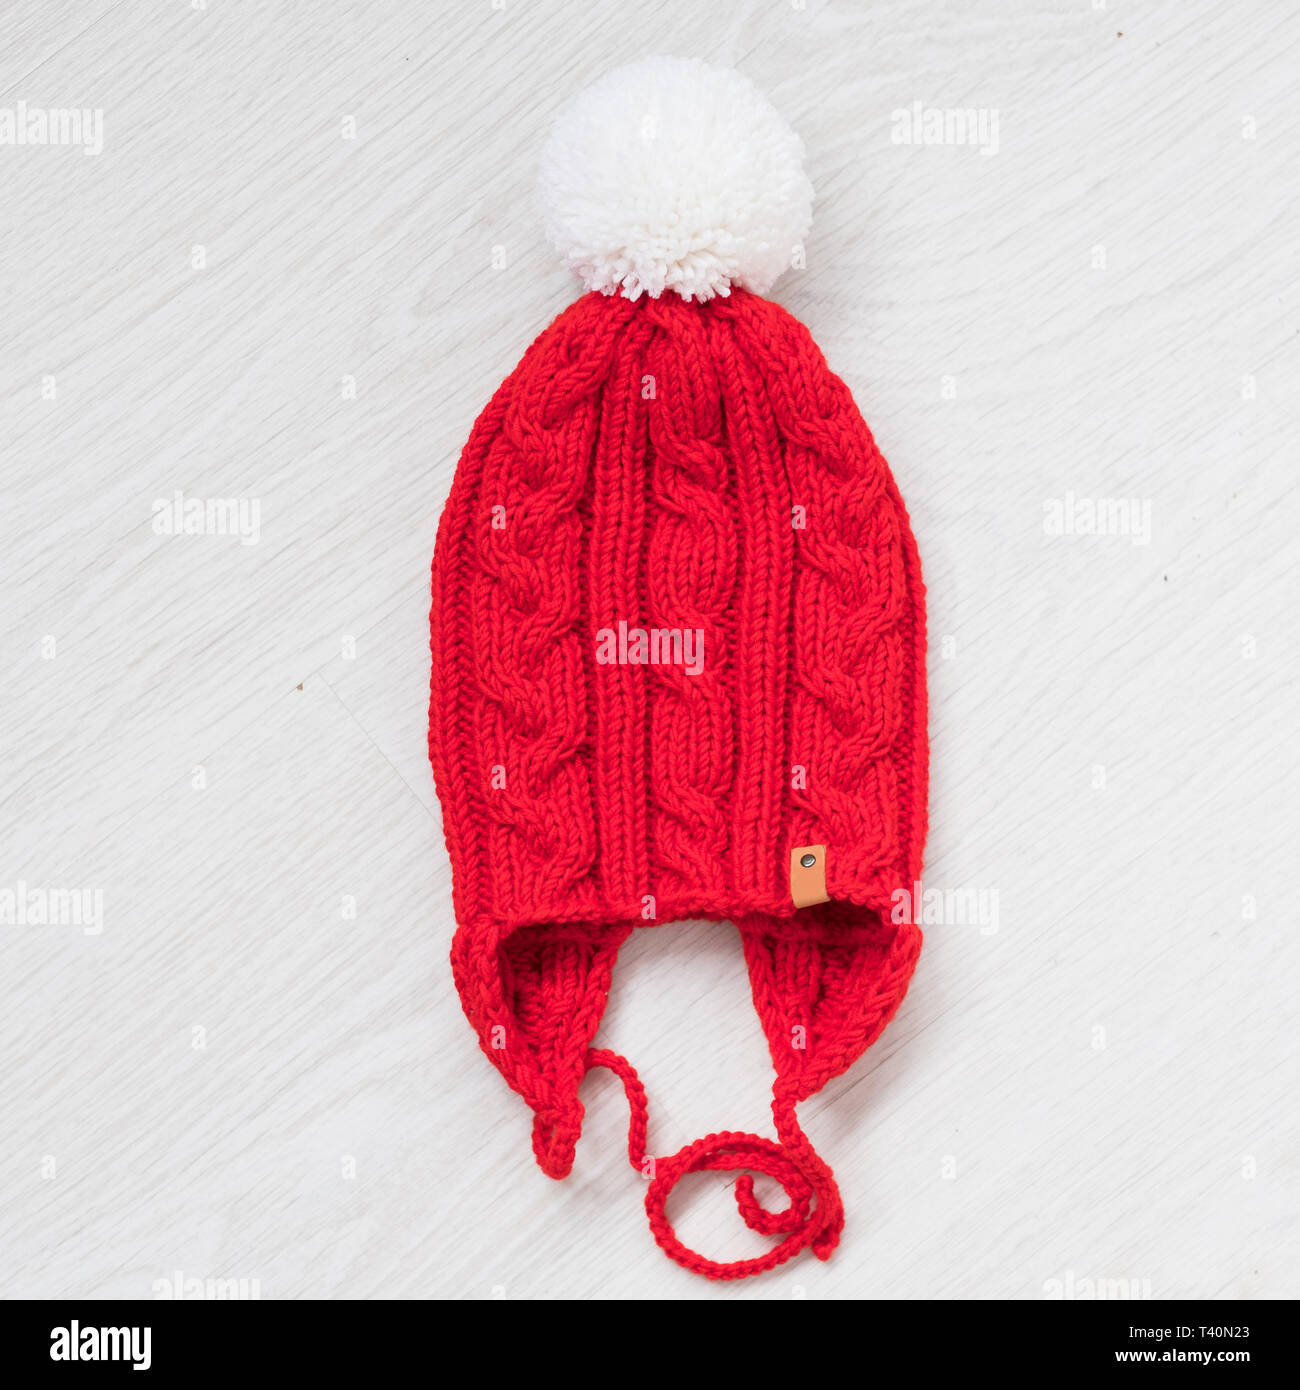 0f757018fa4 cute cozy knitted children winter red hat - Stock Image